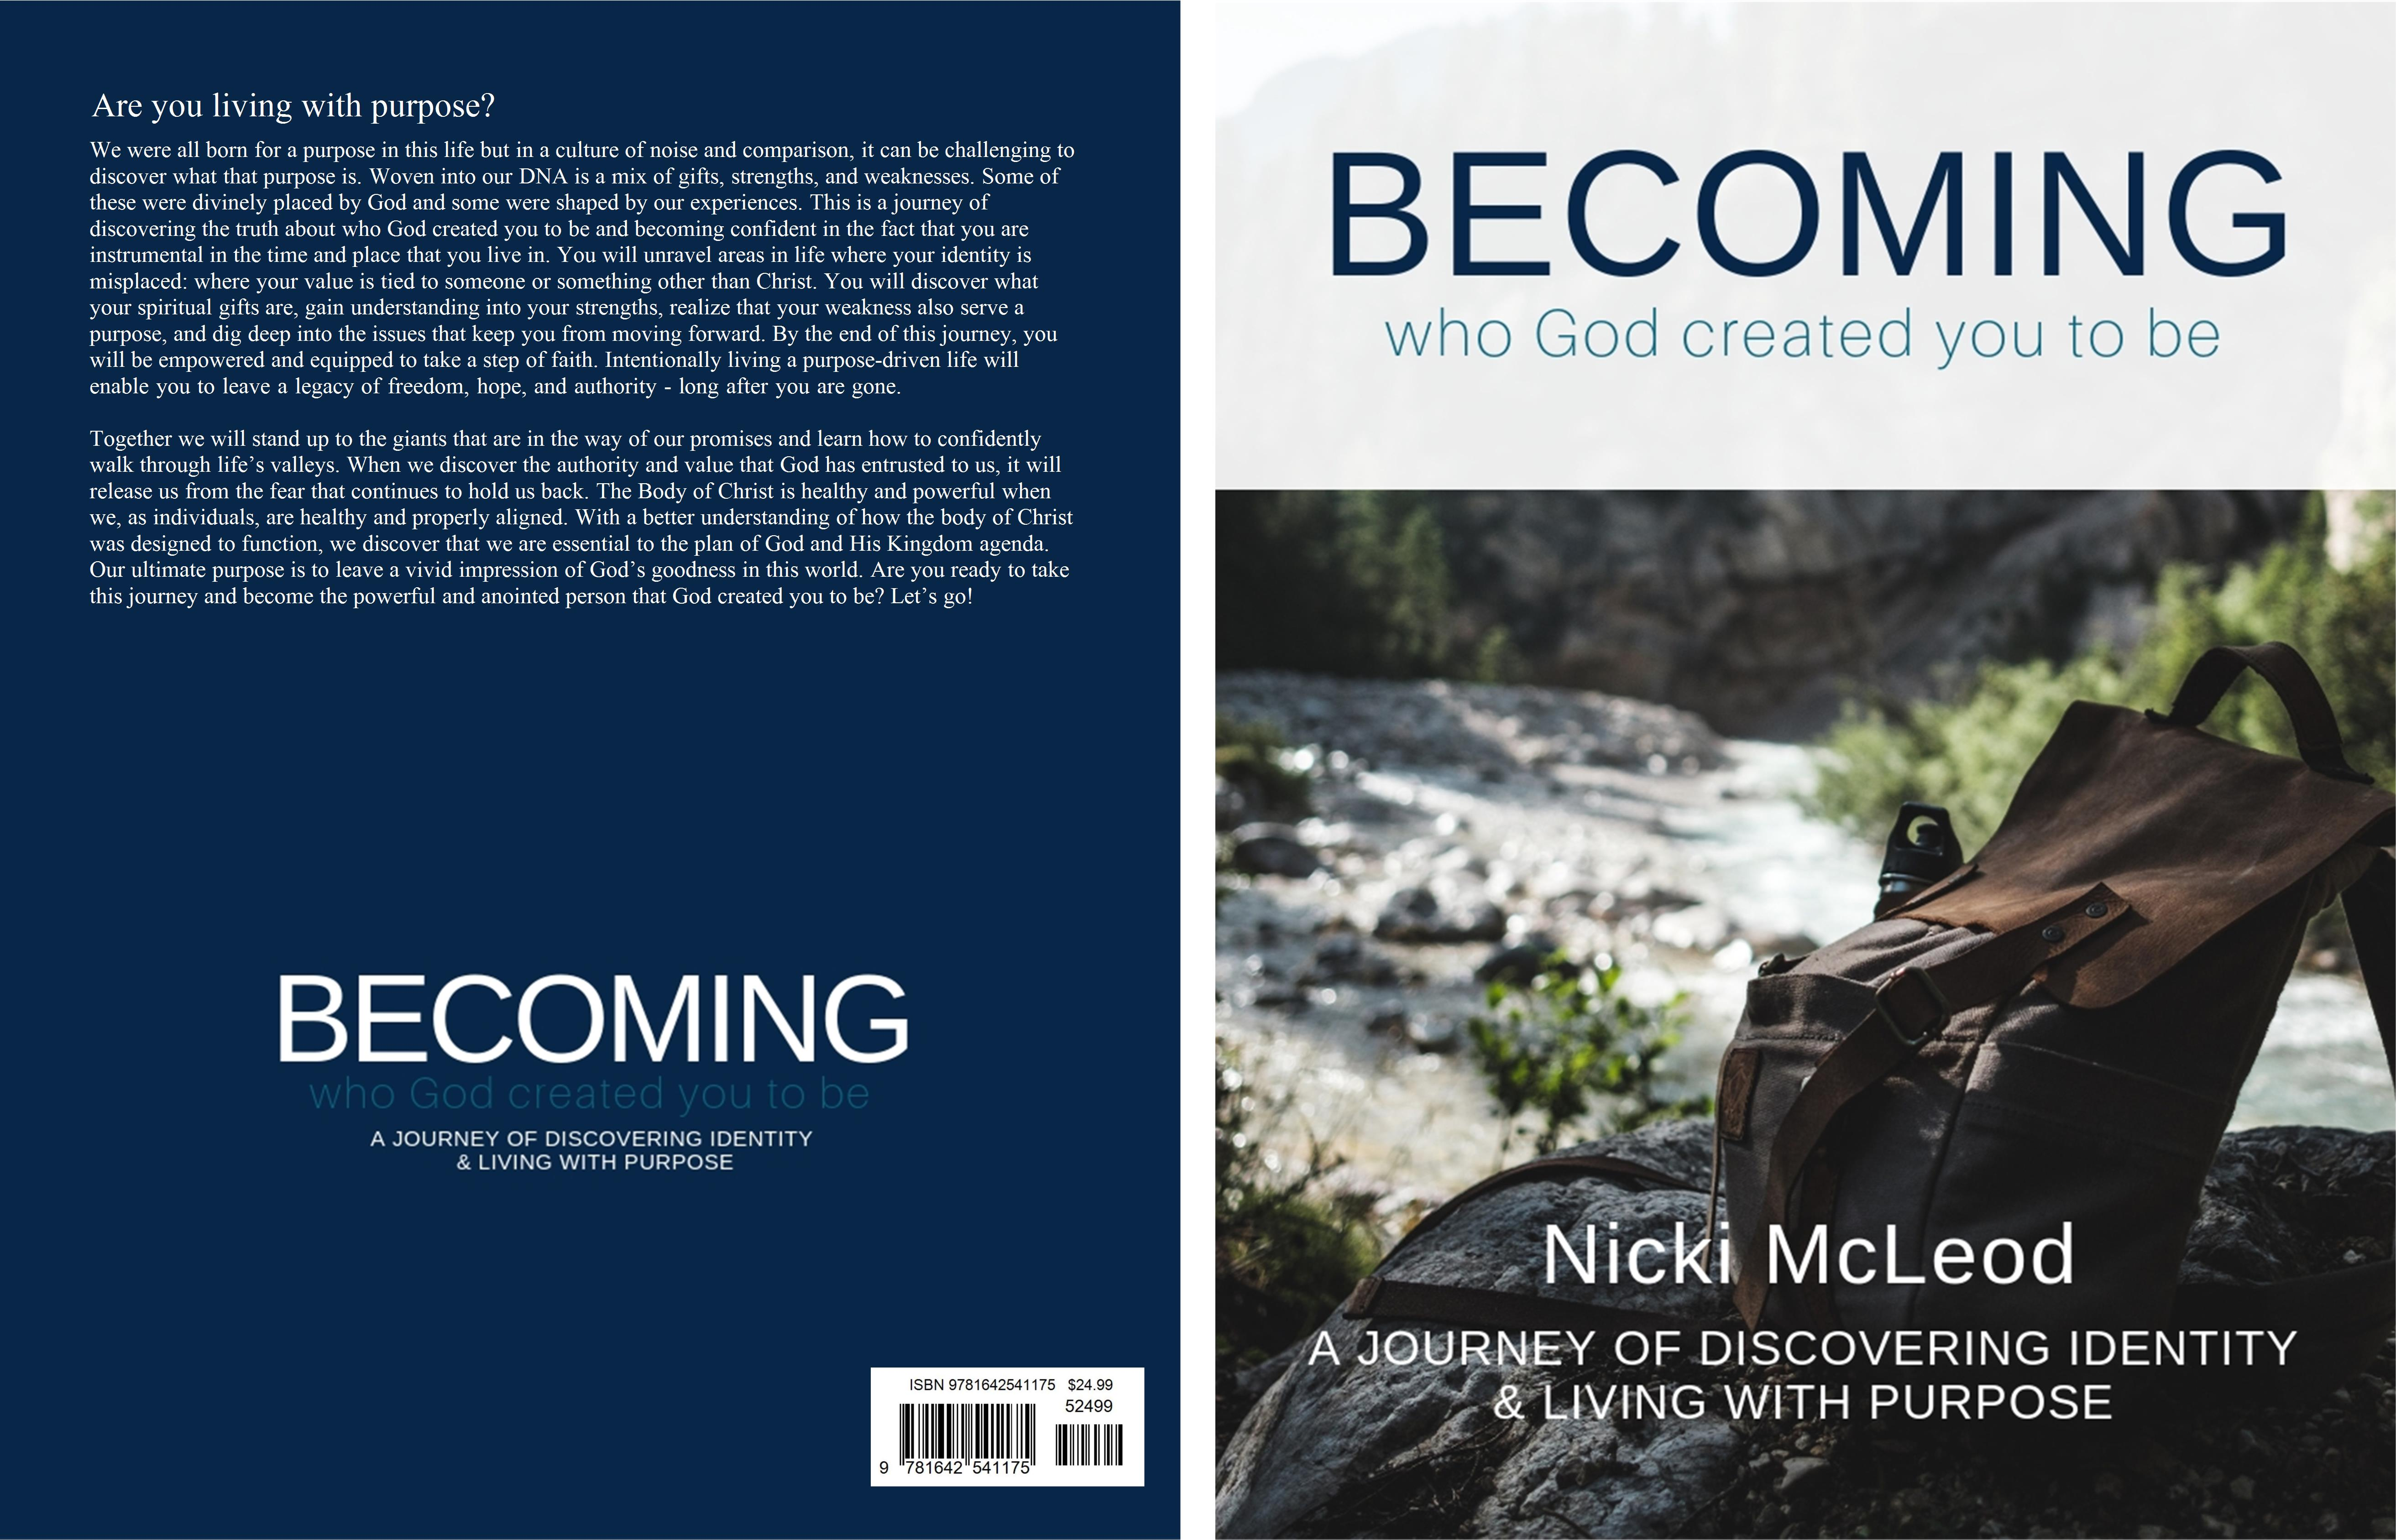 Becoming Who God Created You To Be cover image